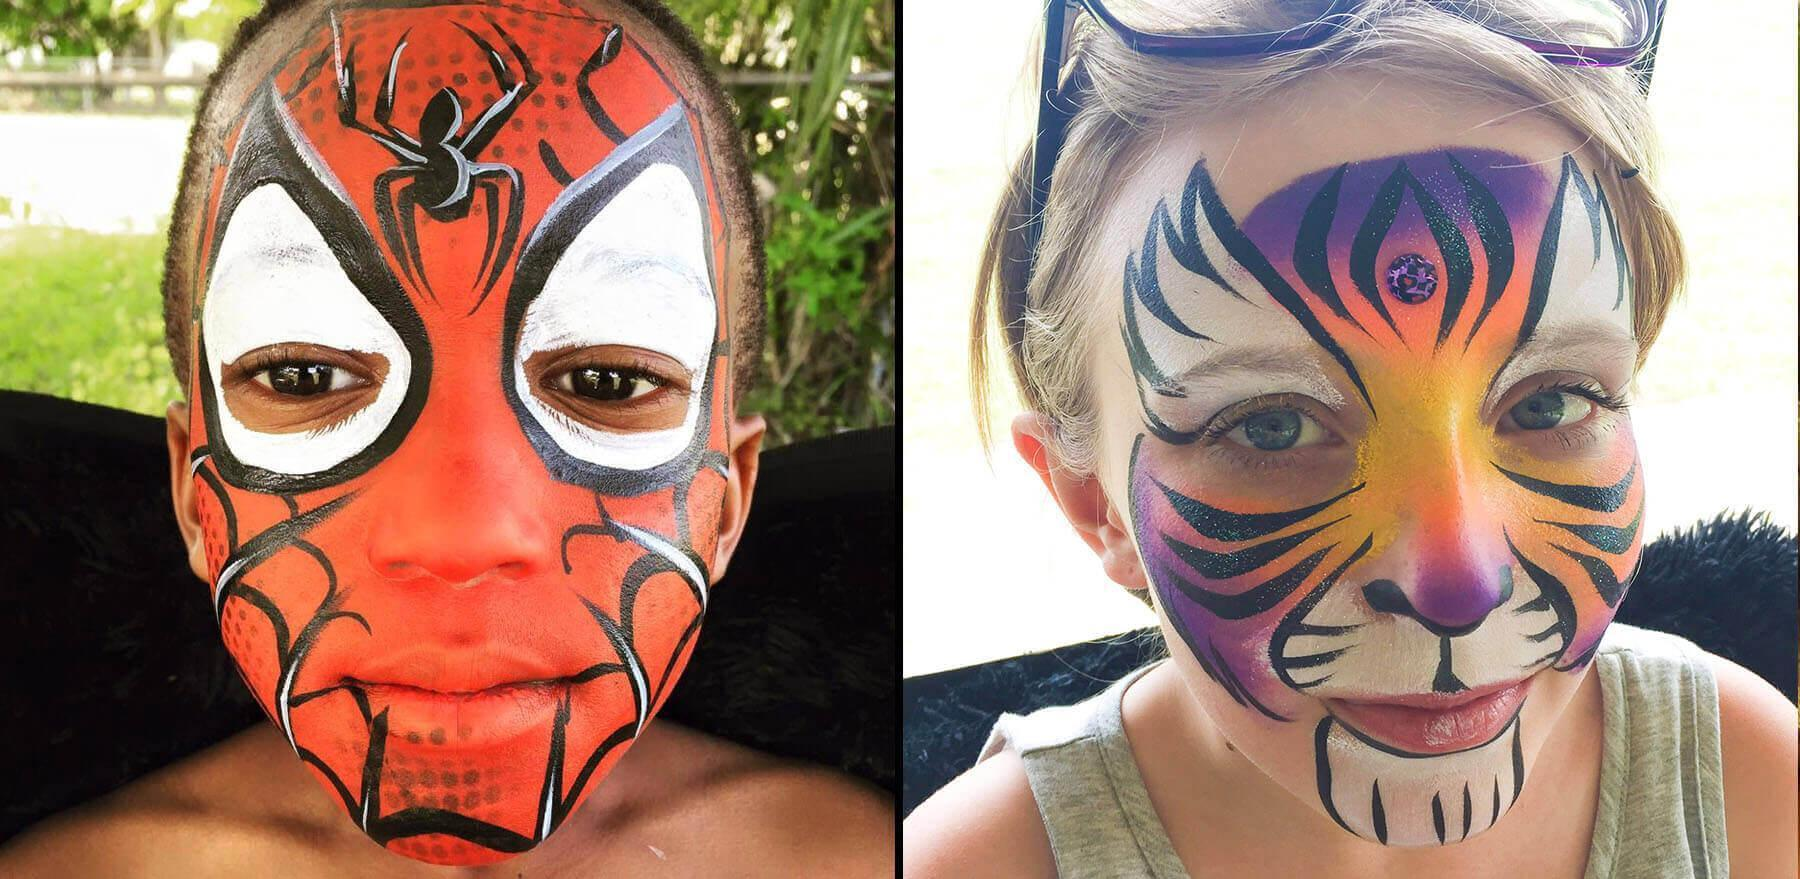 orlando-face-painter-for-kids-parties